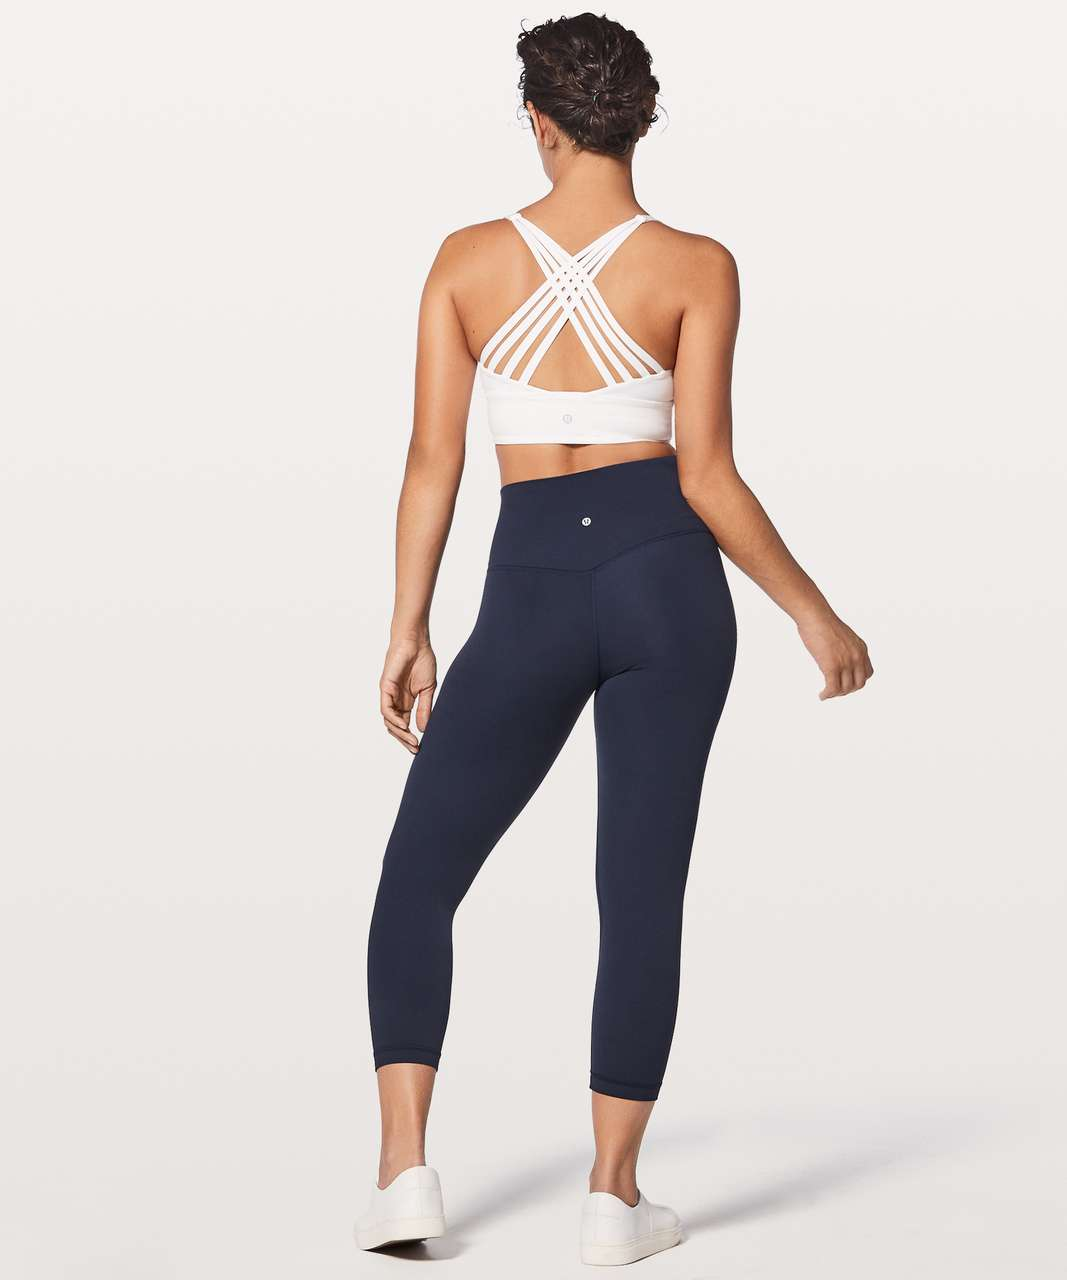 Lululemon Free To Be Moved Bra - White